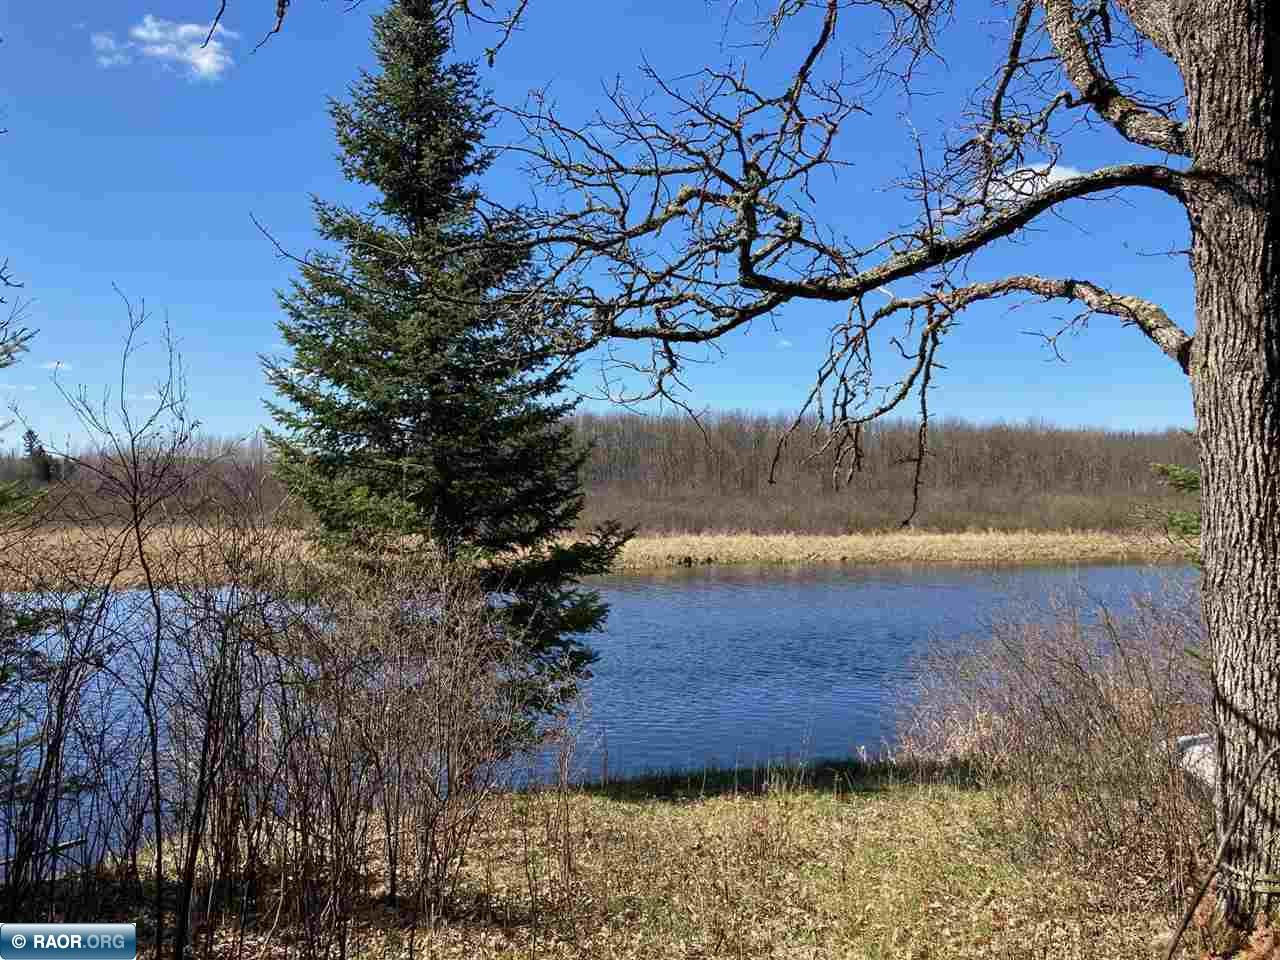 TBD Riise Rd, Orr, MN 55771